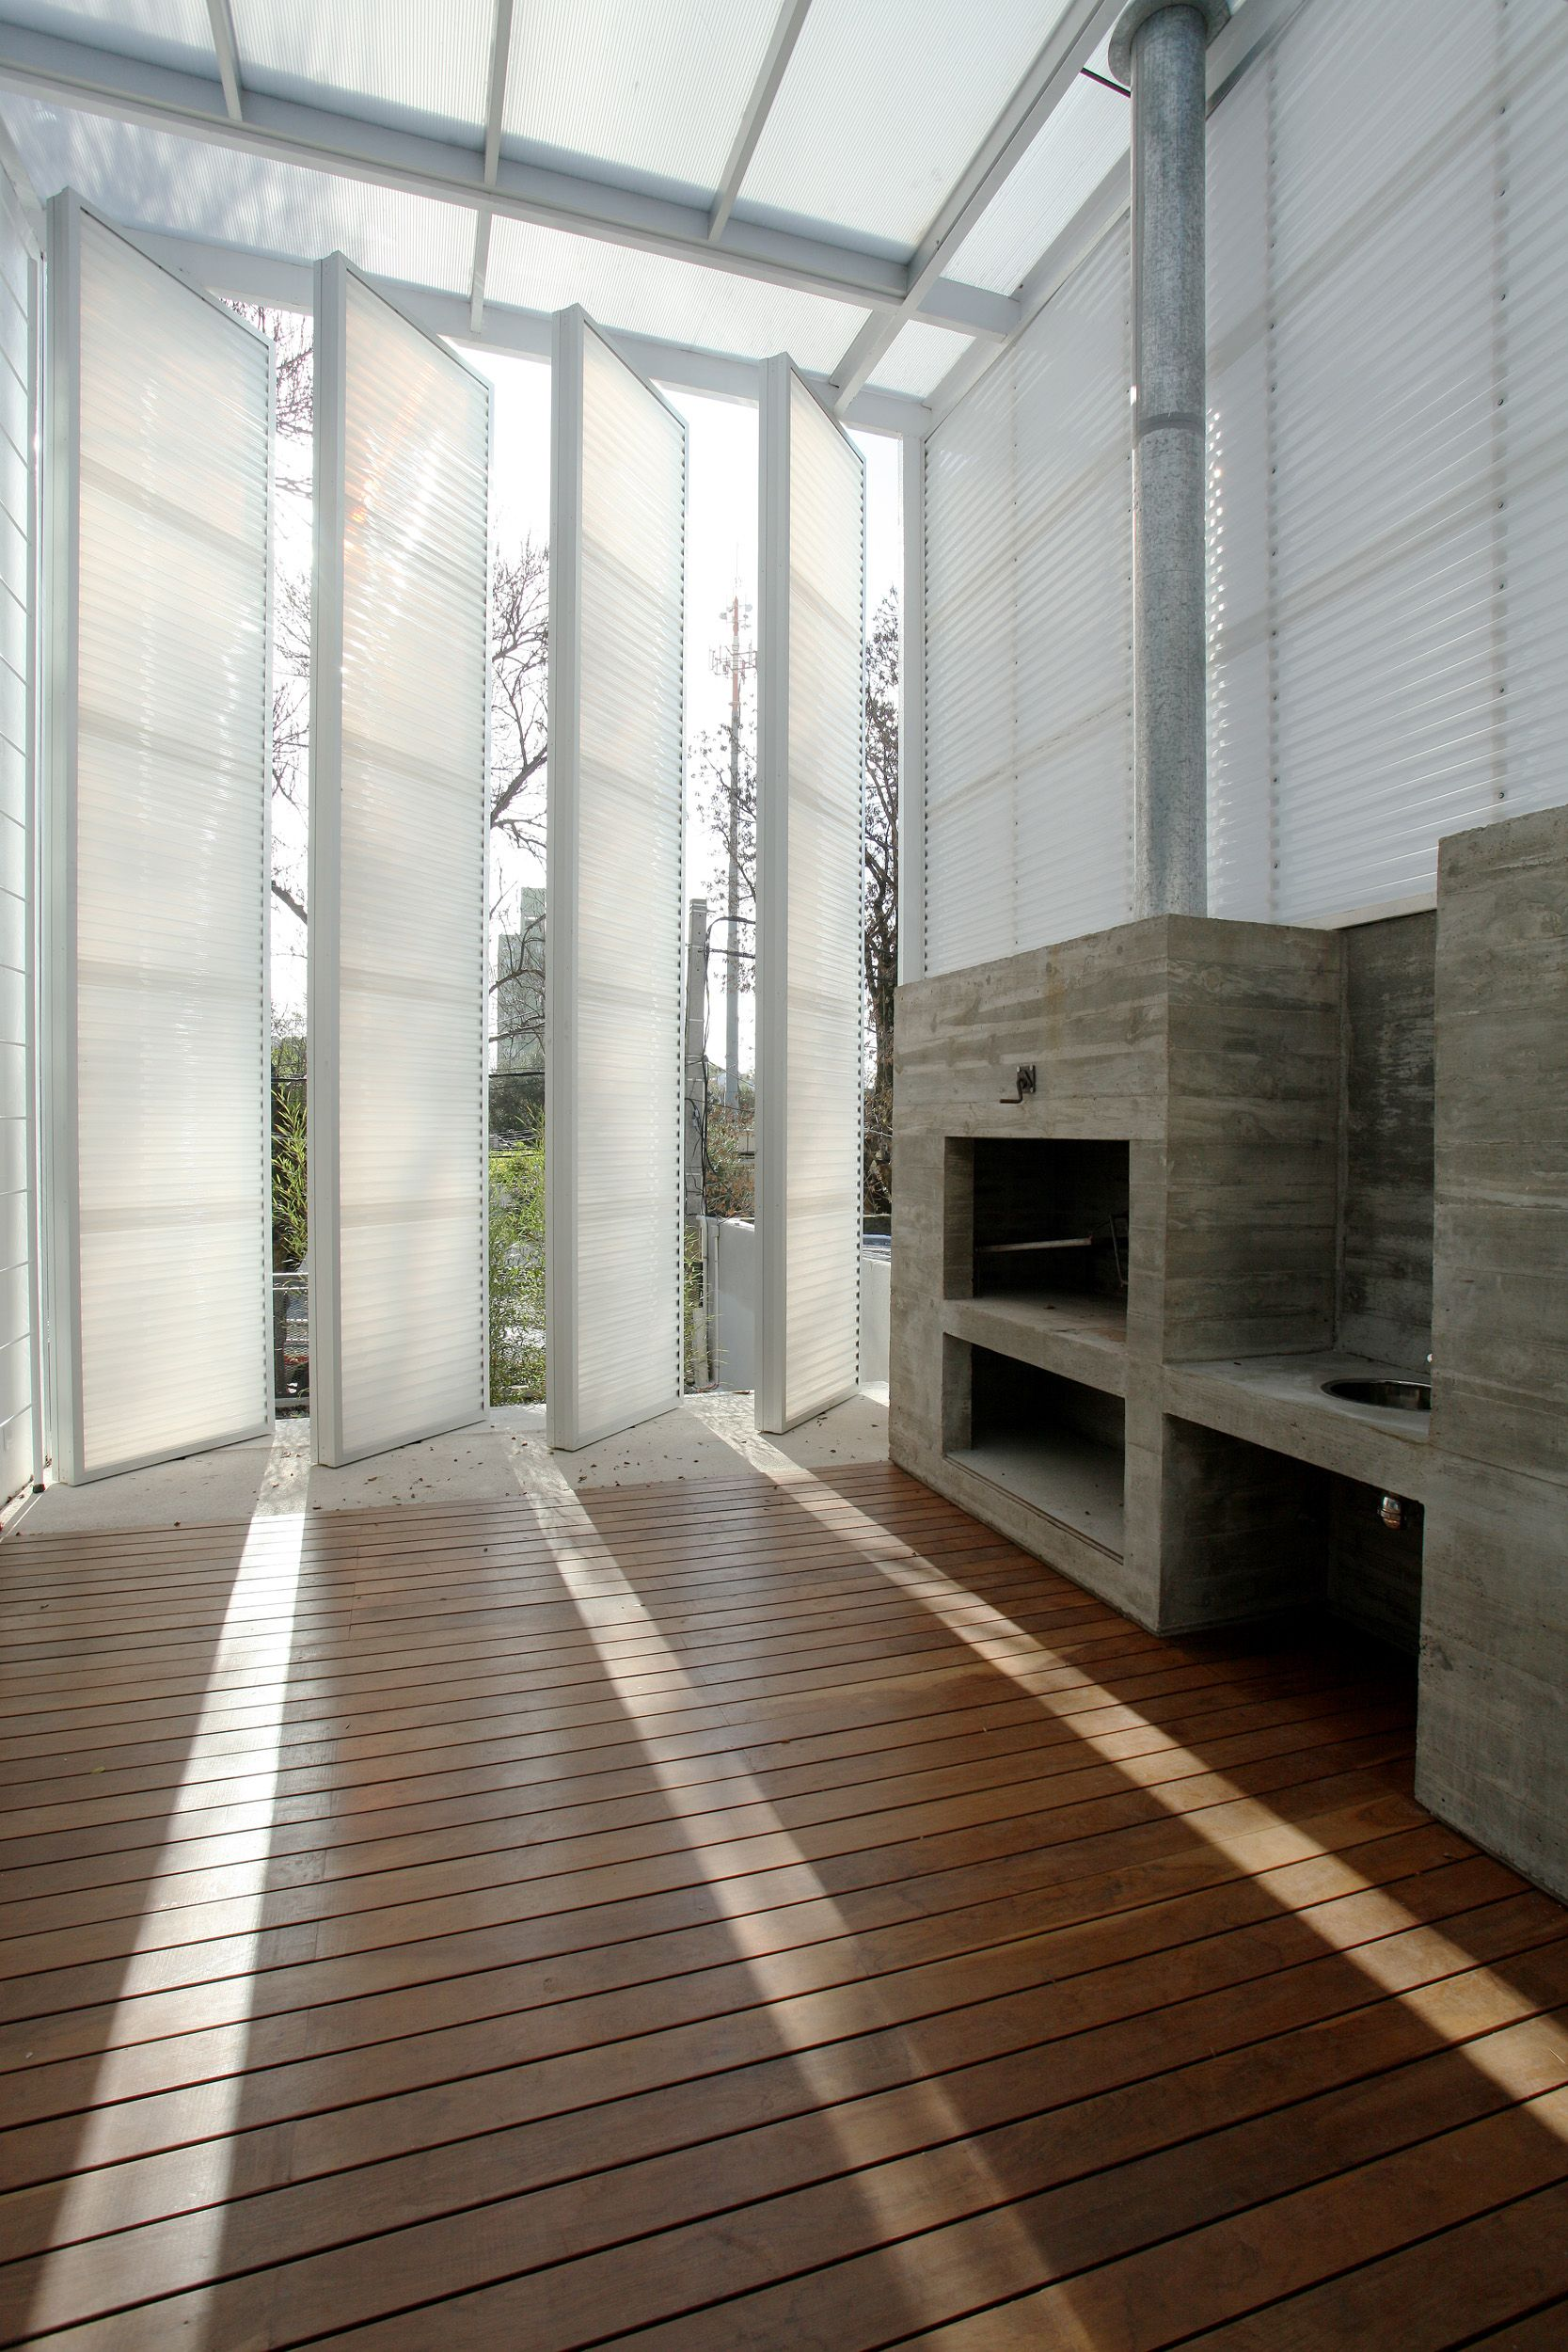 Exterior window wall design indoors sliding doors ideas  sliding door room divider  pinterest